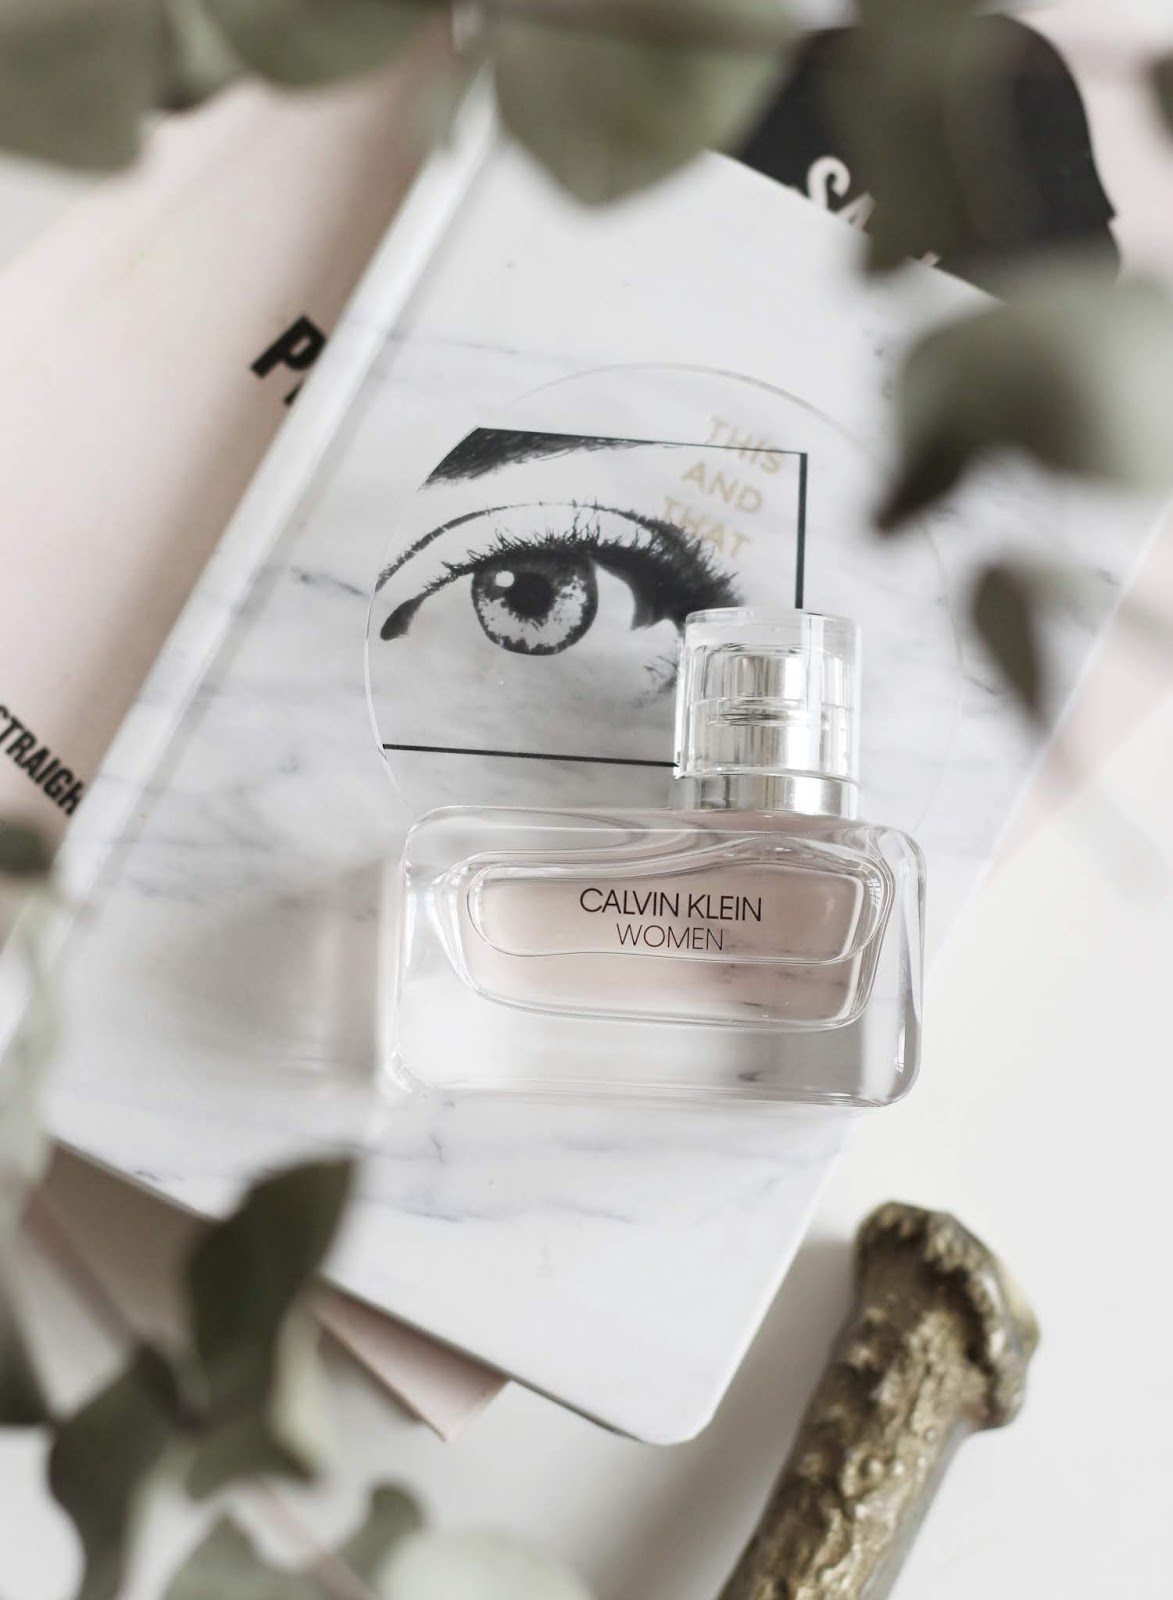 Calvin Klein Women Perfume Review Fragrance Direct